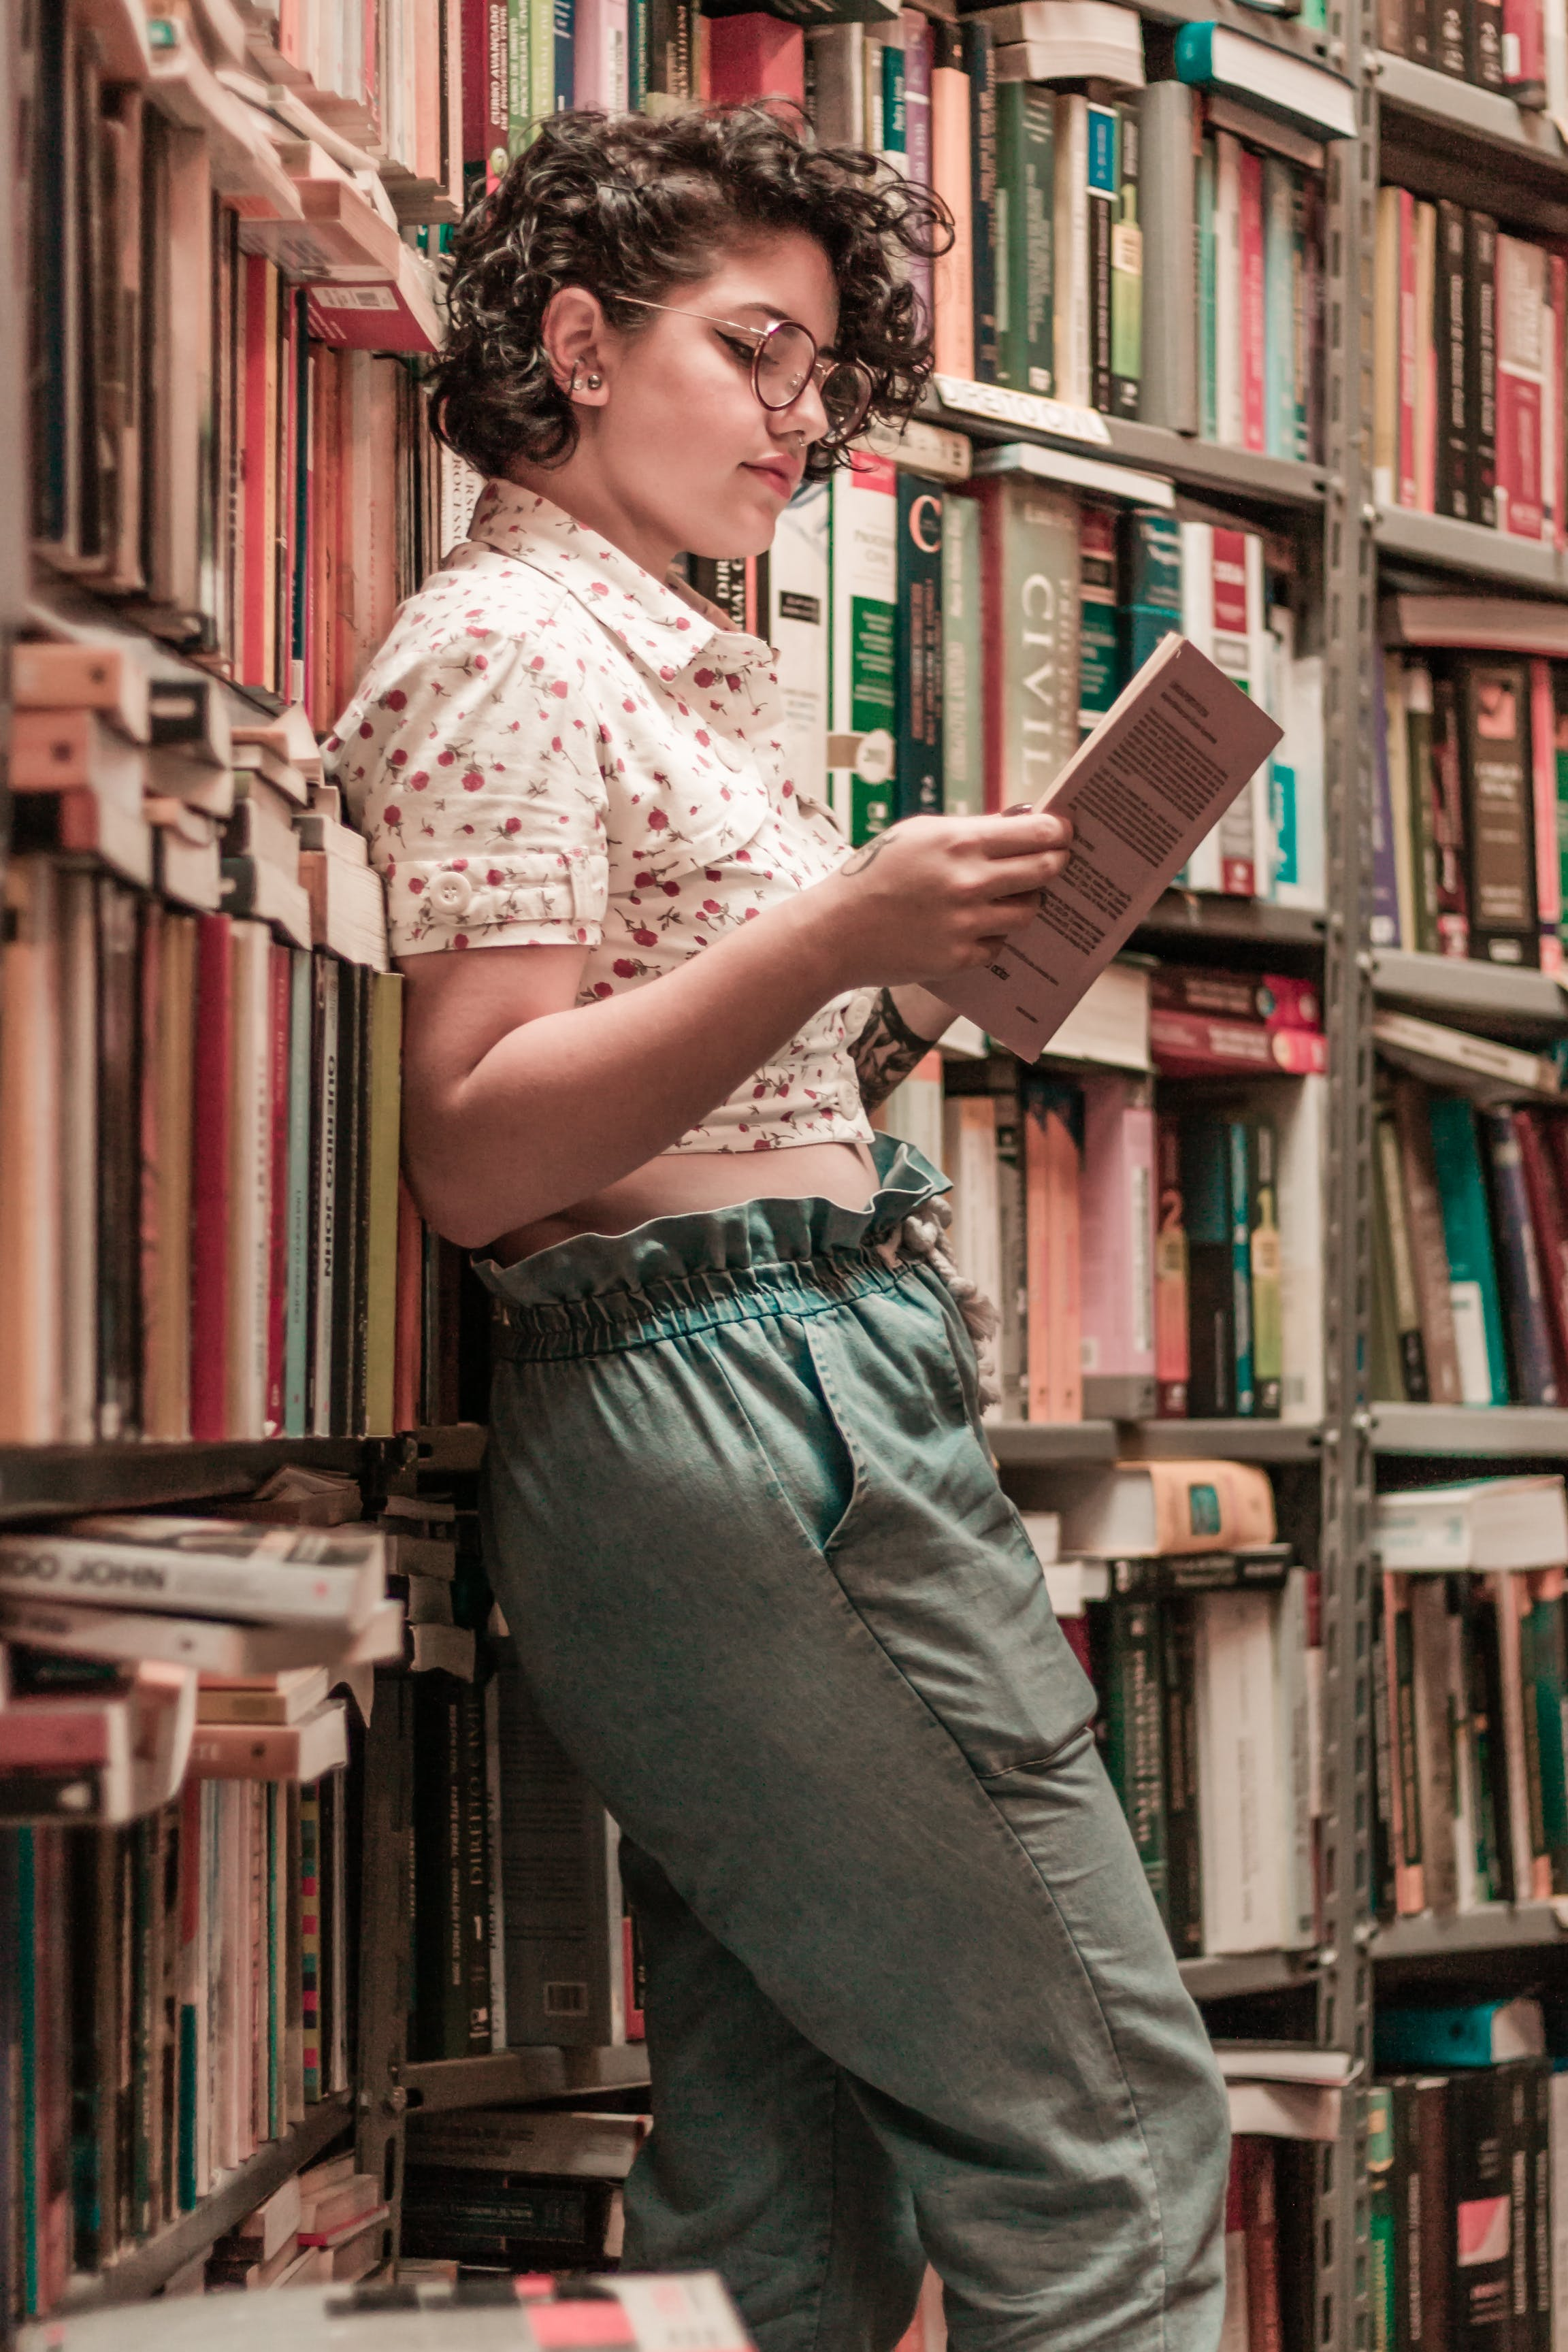 Woman Holding Book Leaning on Books on Shelves